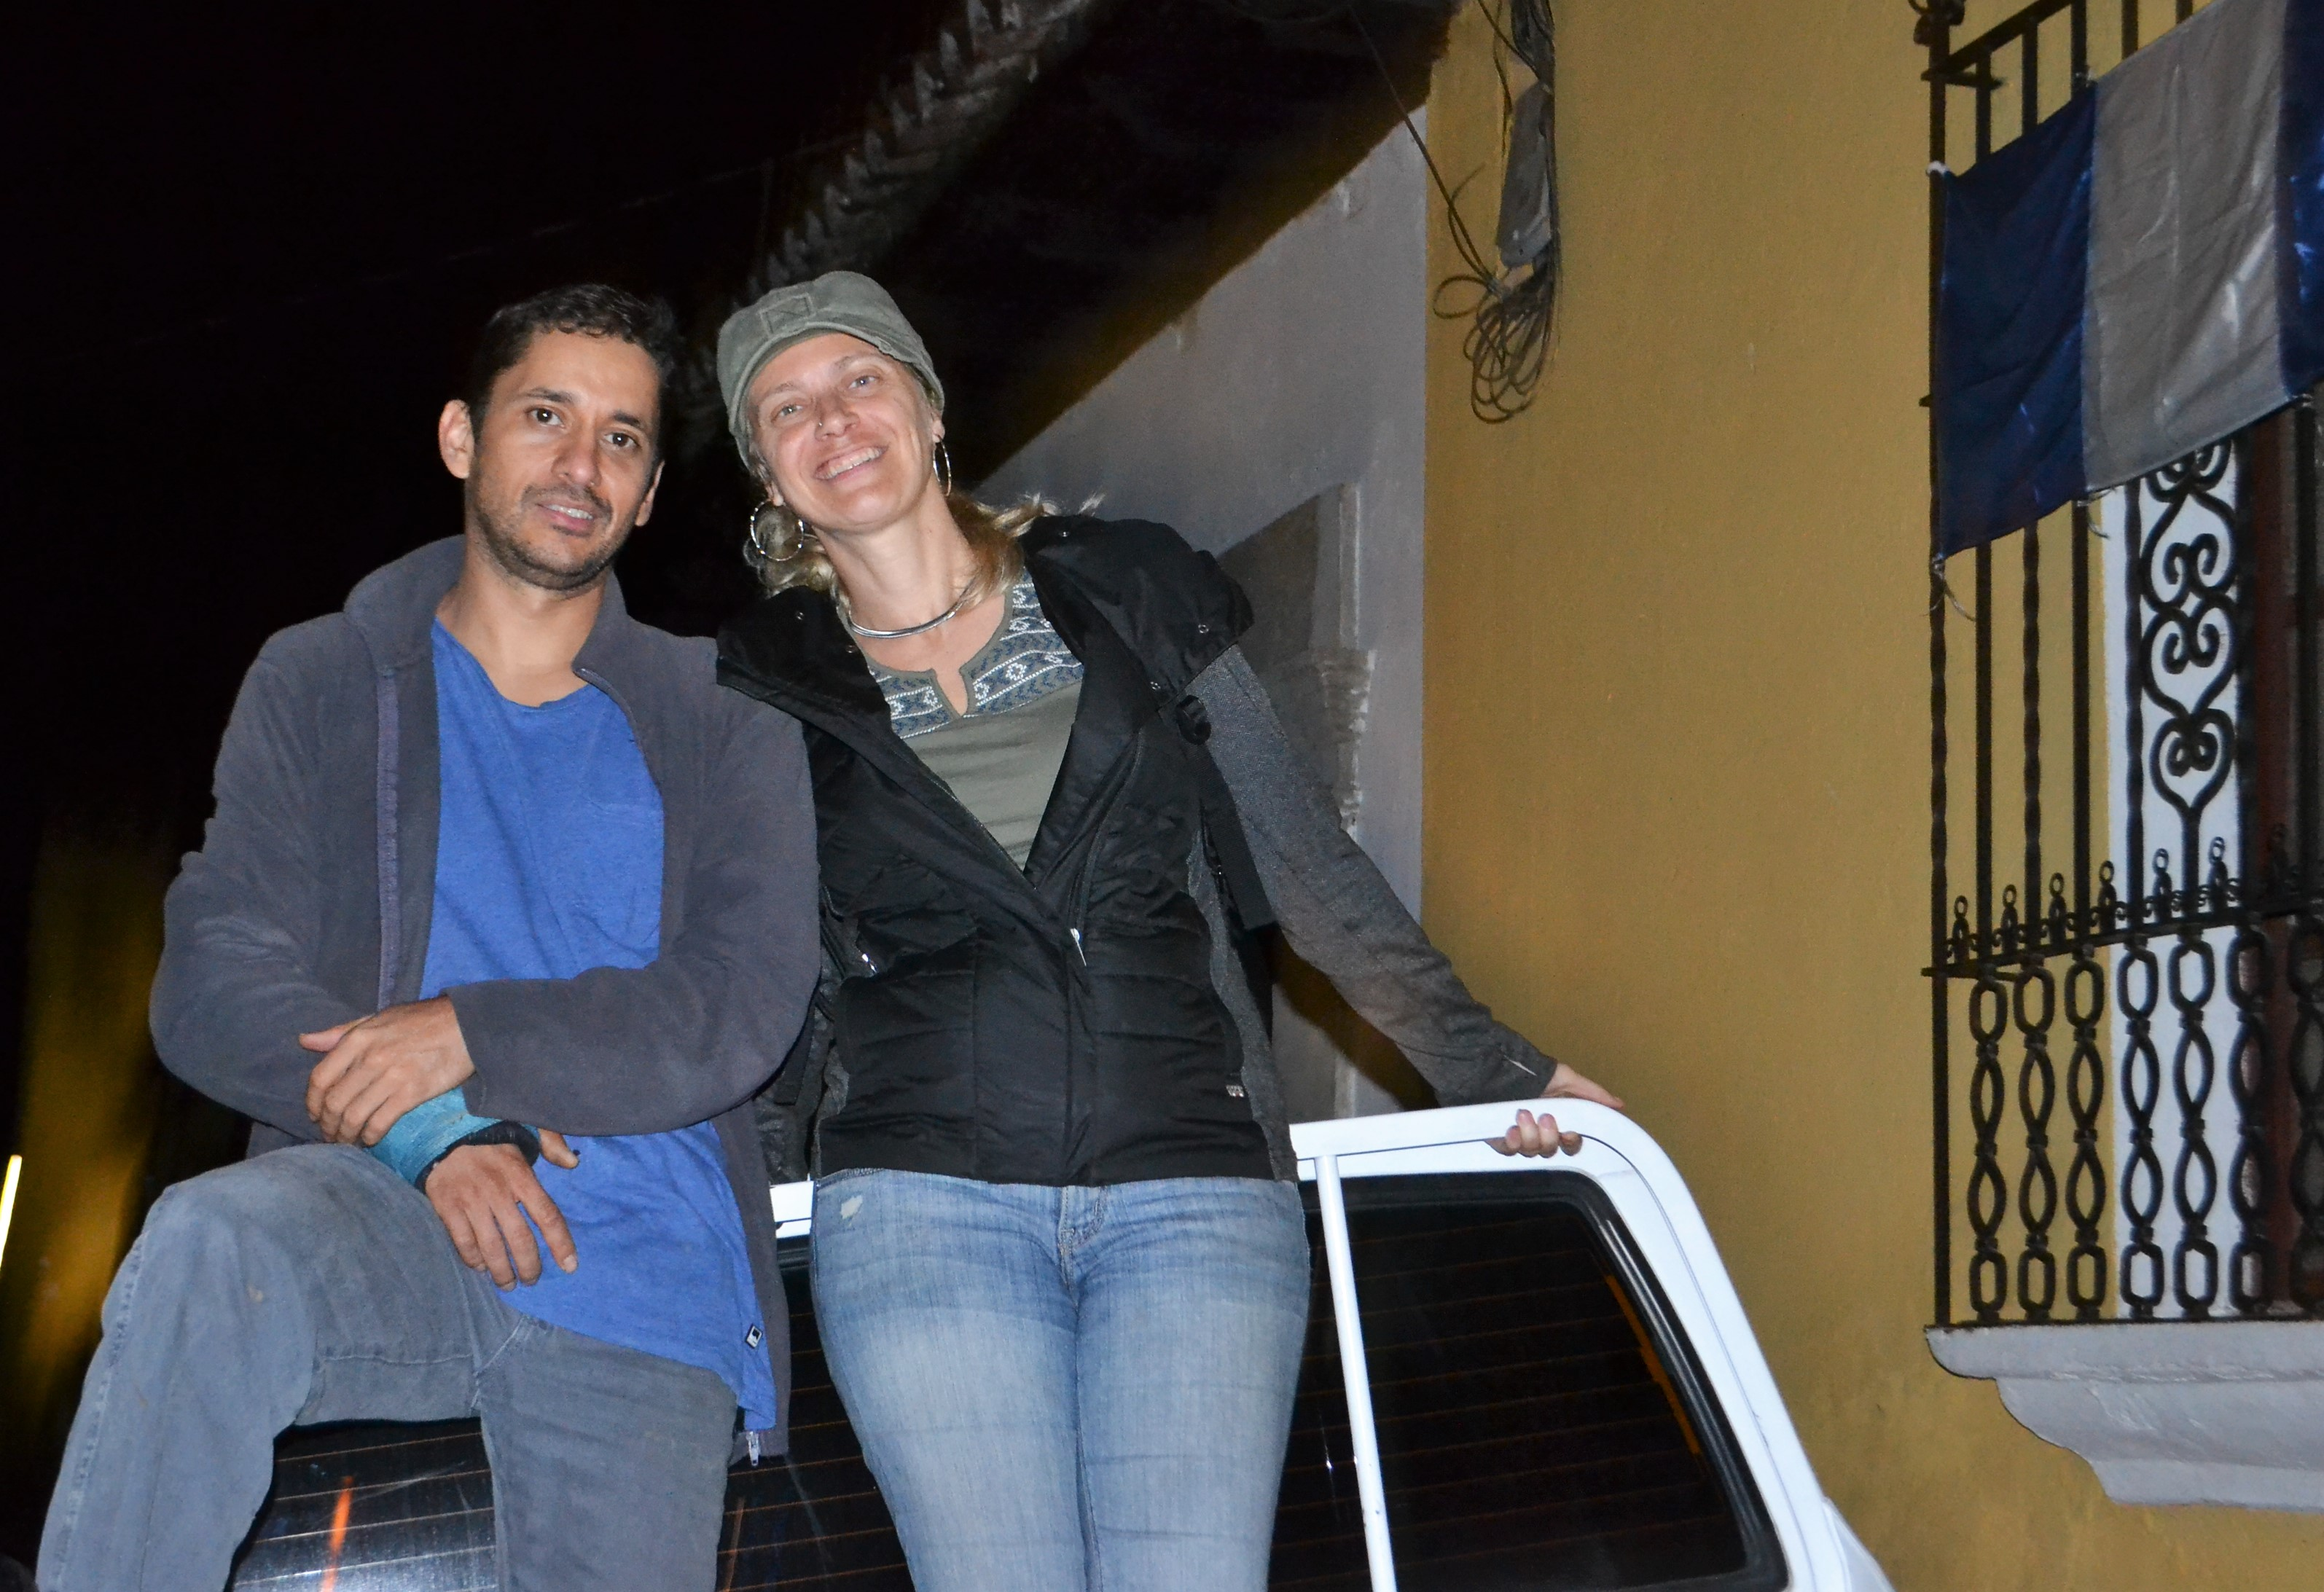 date night, night rider, antigua guatemala